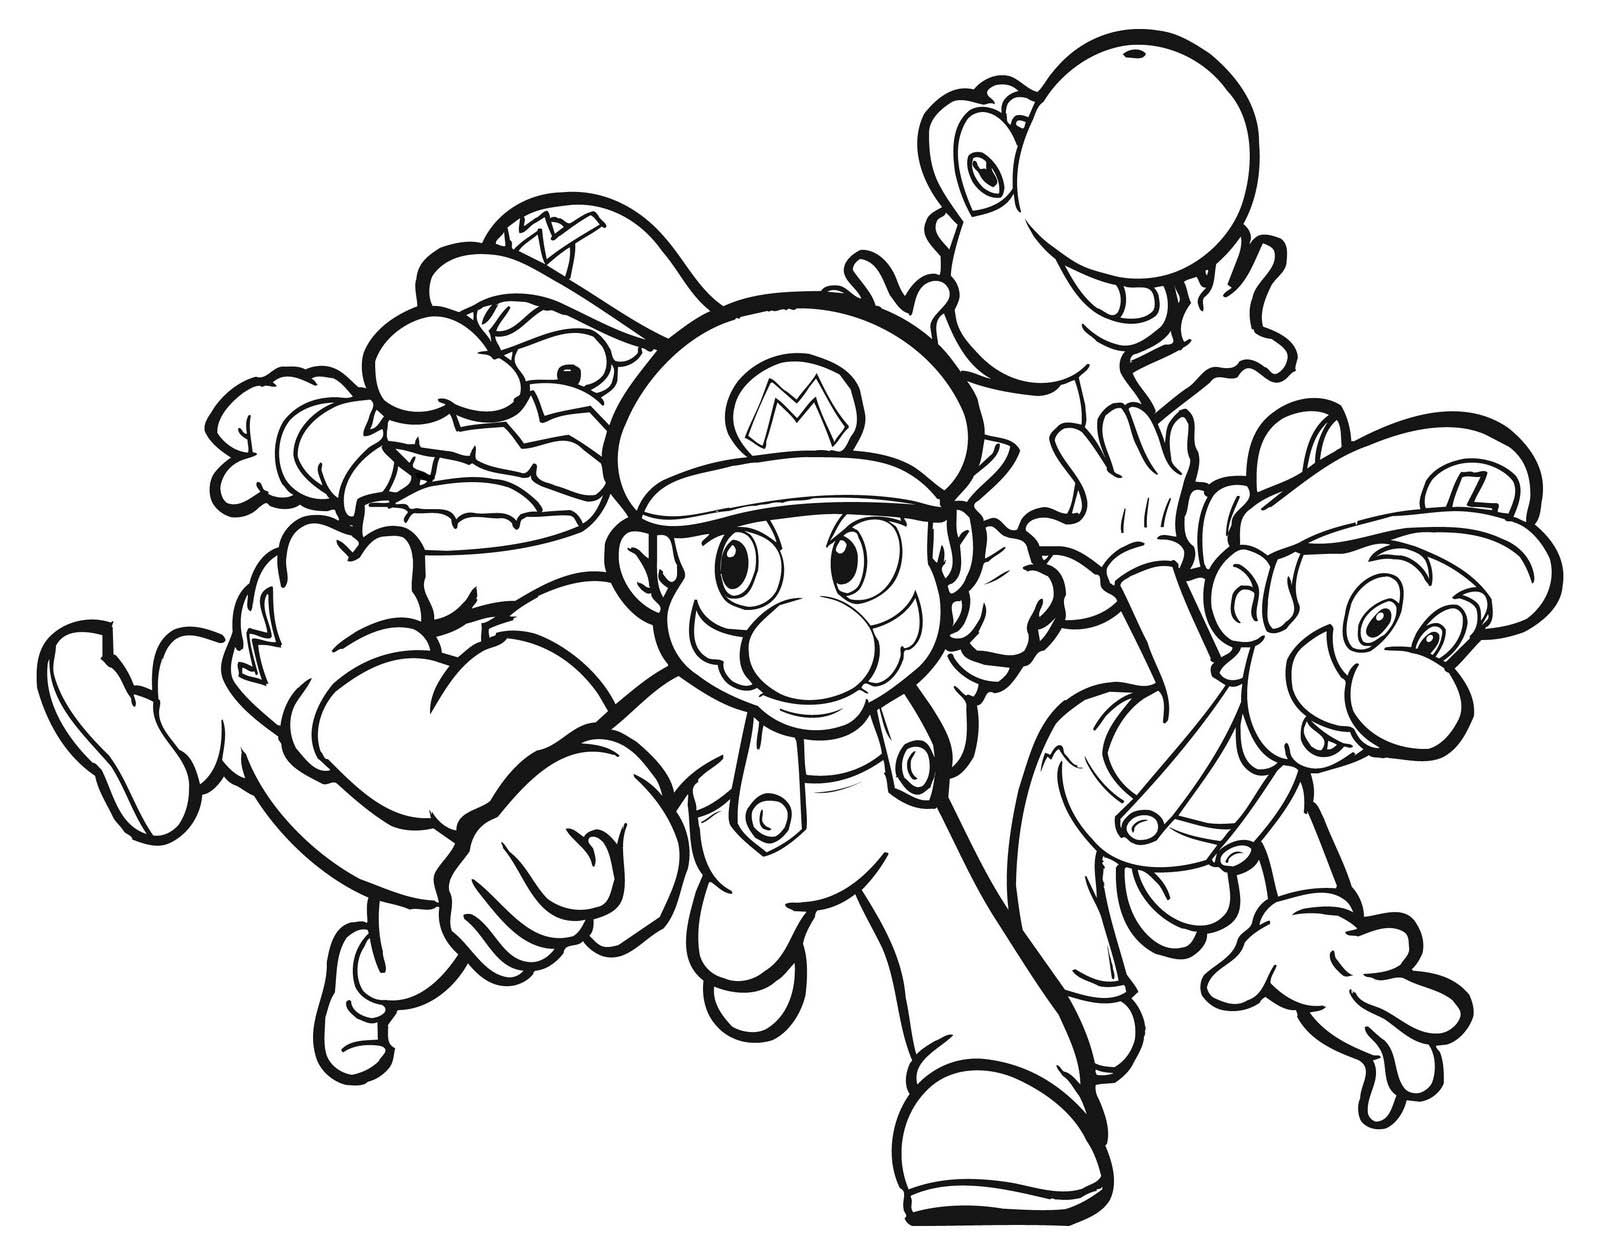 Coloring Pages Super Smash Brothers Coloring Pages super smash bros coloring pages az brawl colouring page